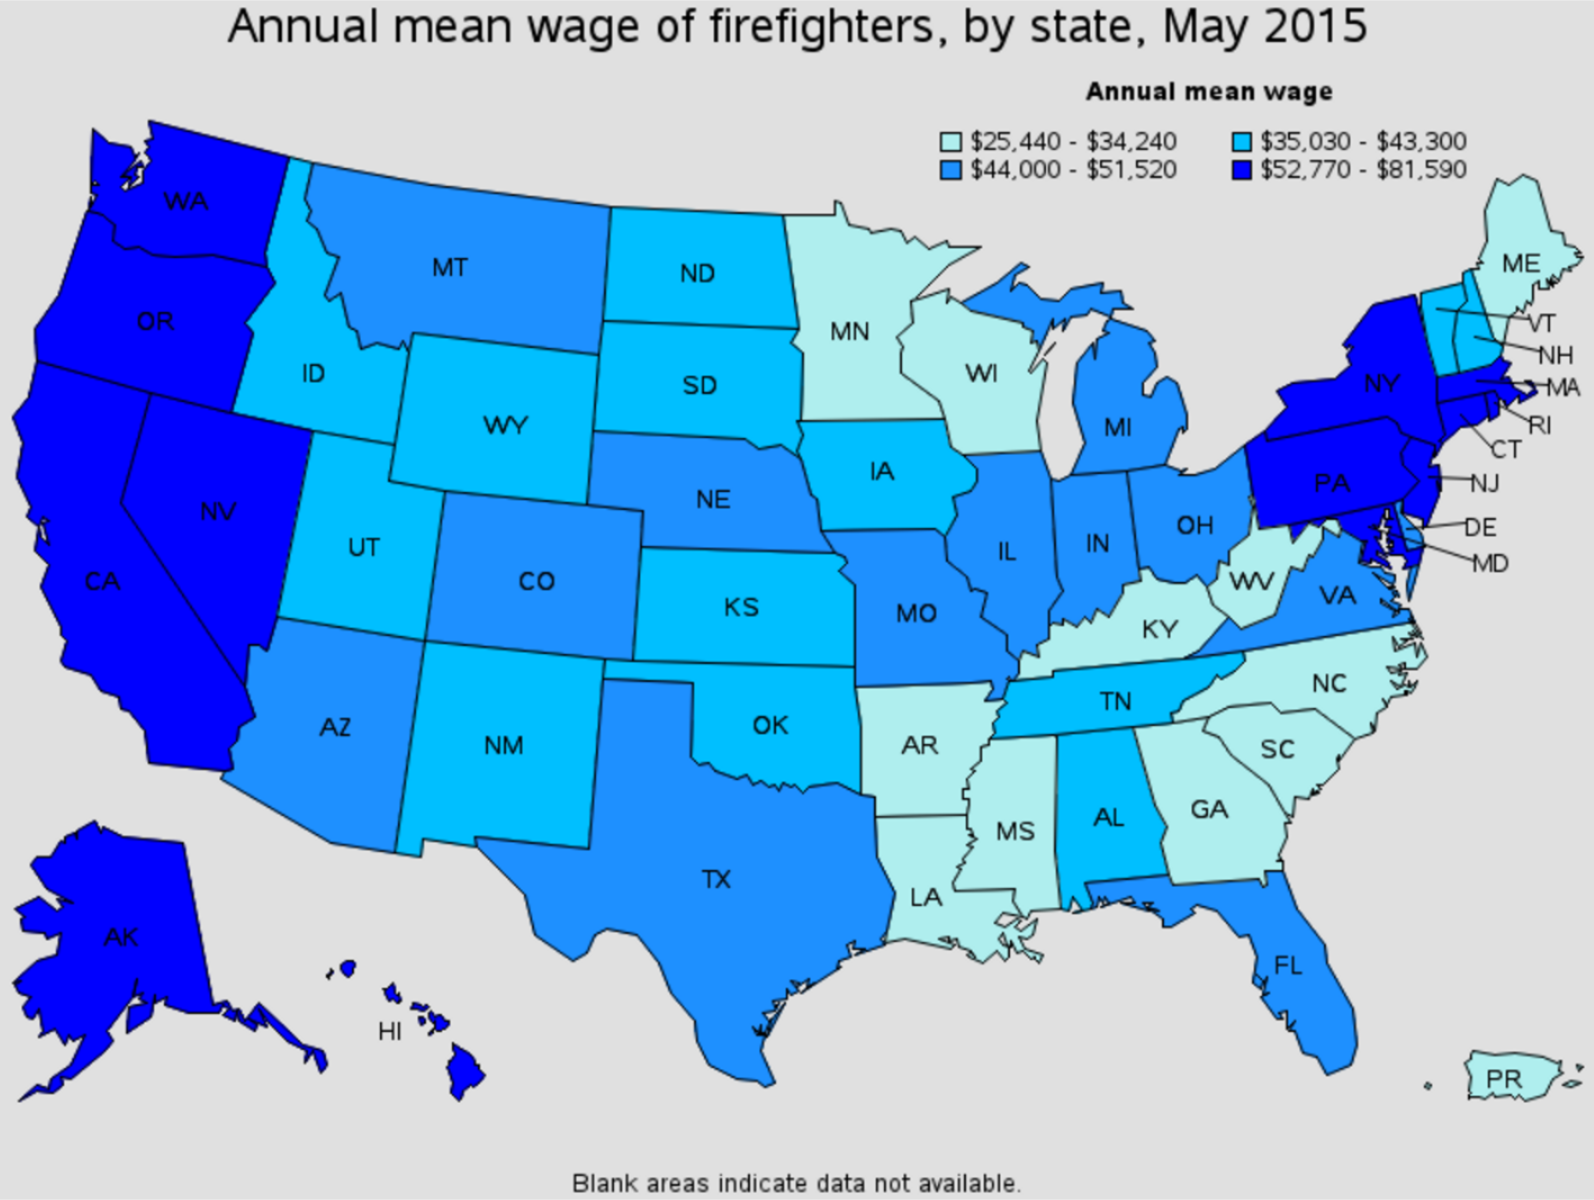 firefighter average salary by state Many Farms Arizona